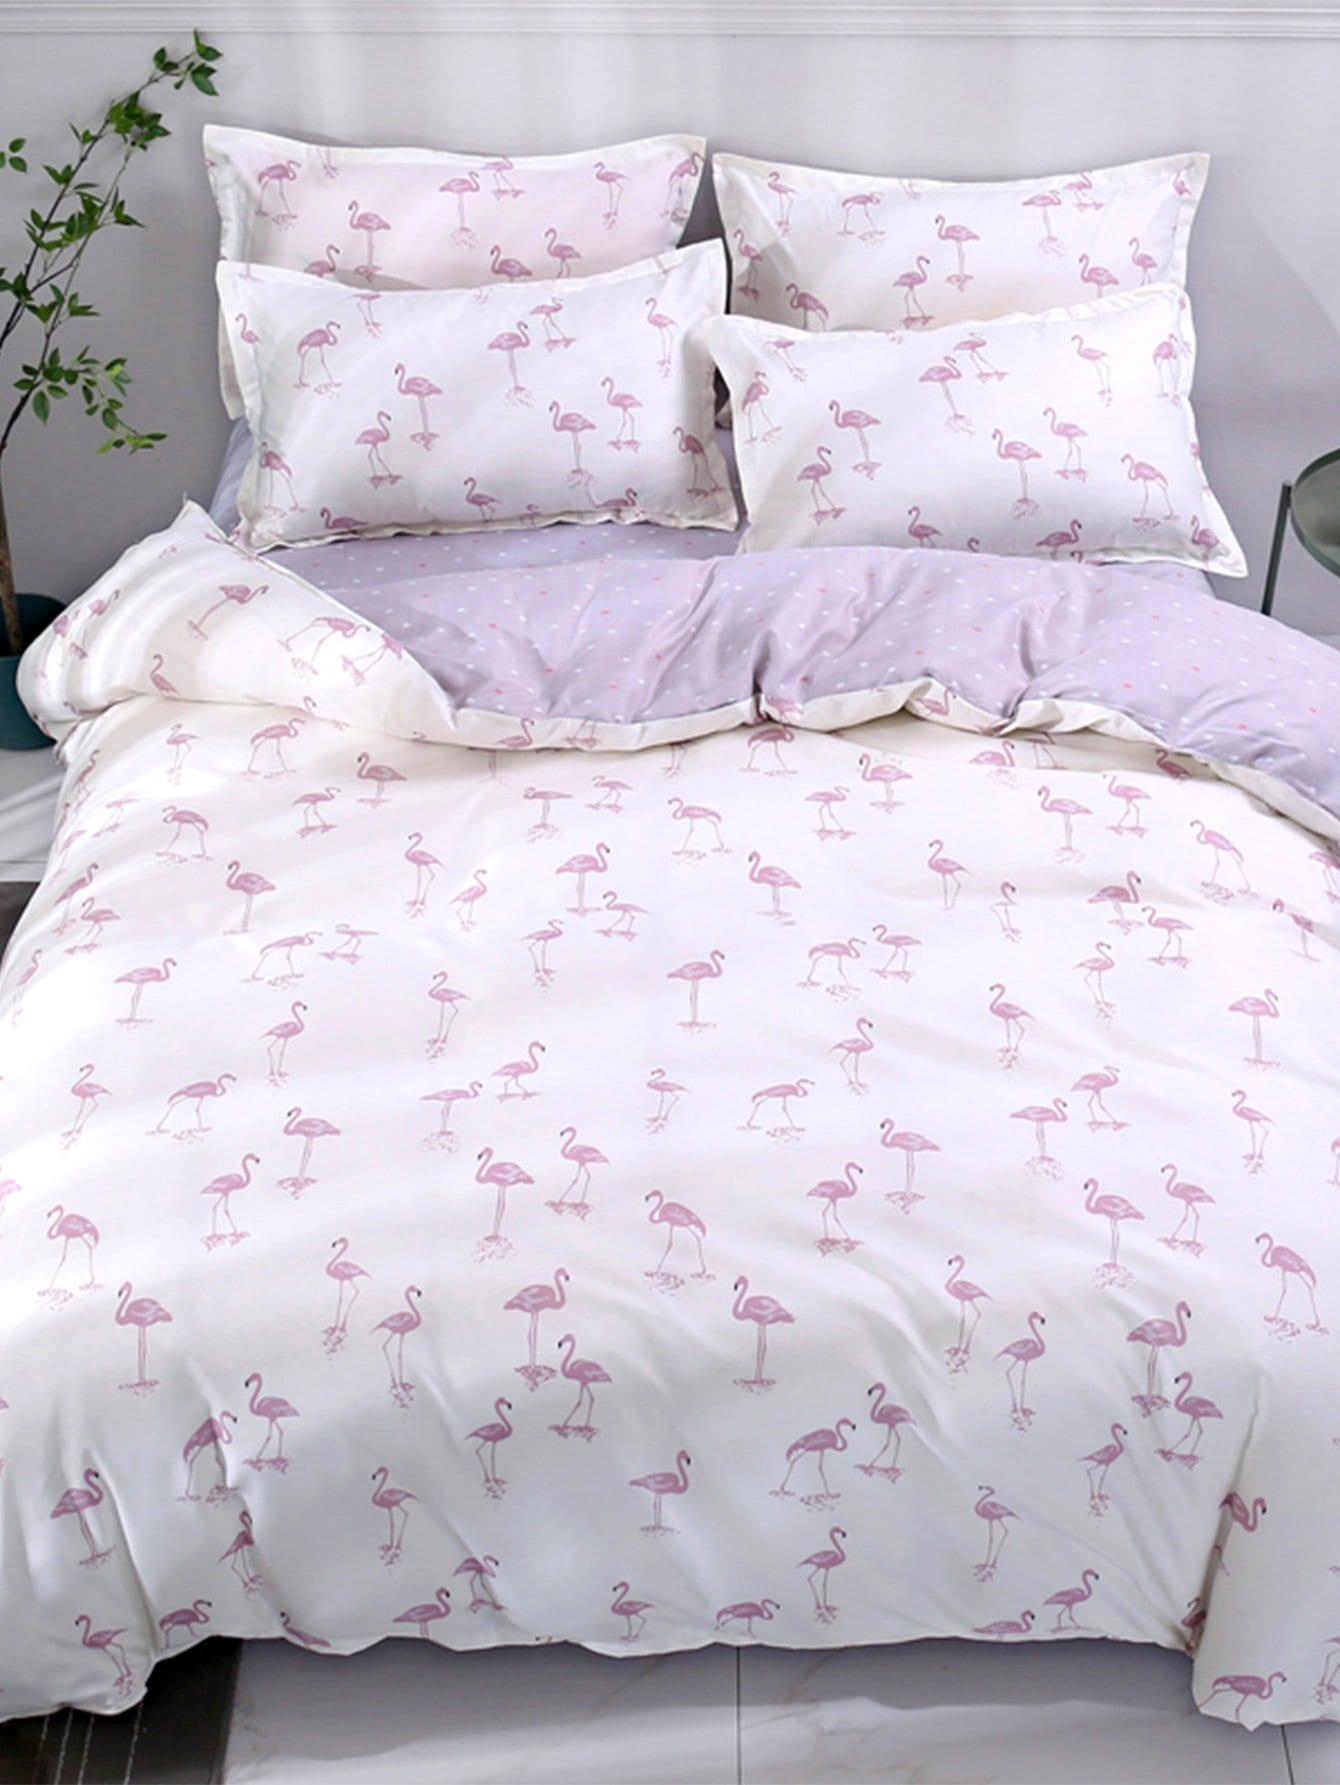 Allover Flamingos Print Sheet Set